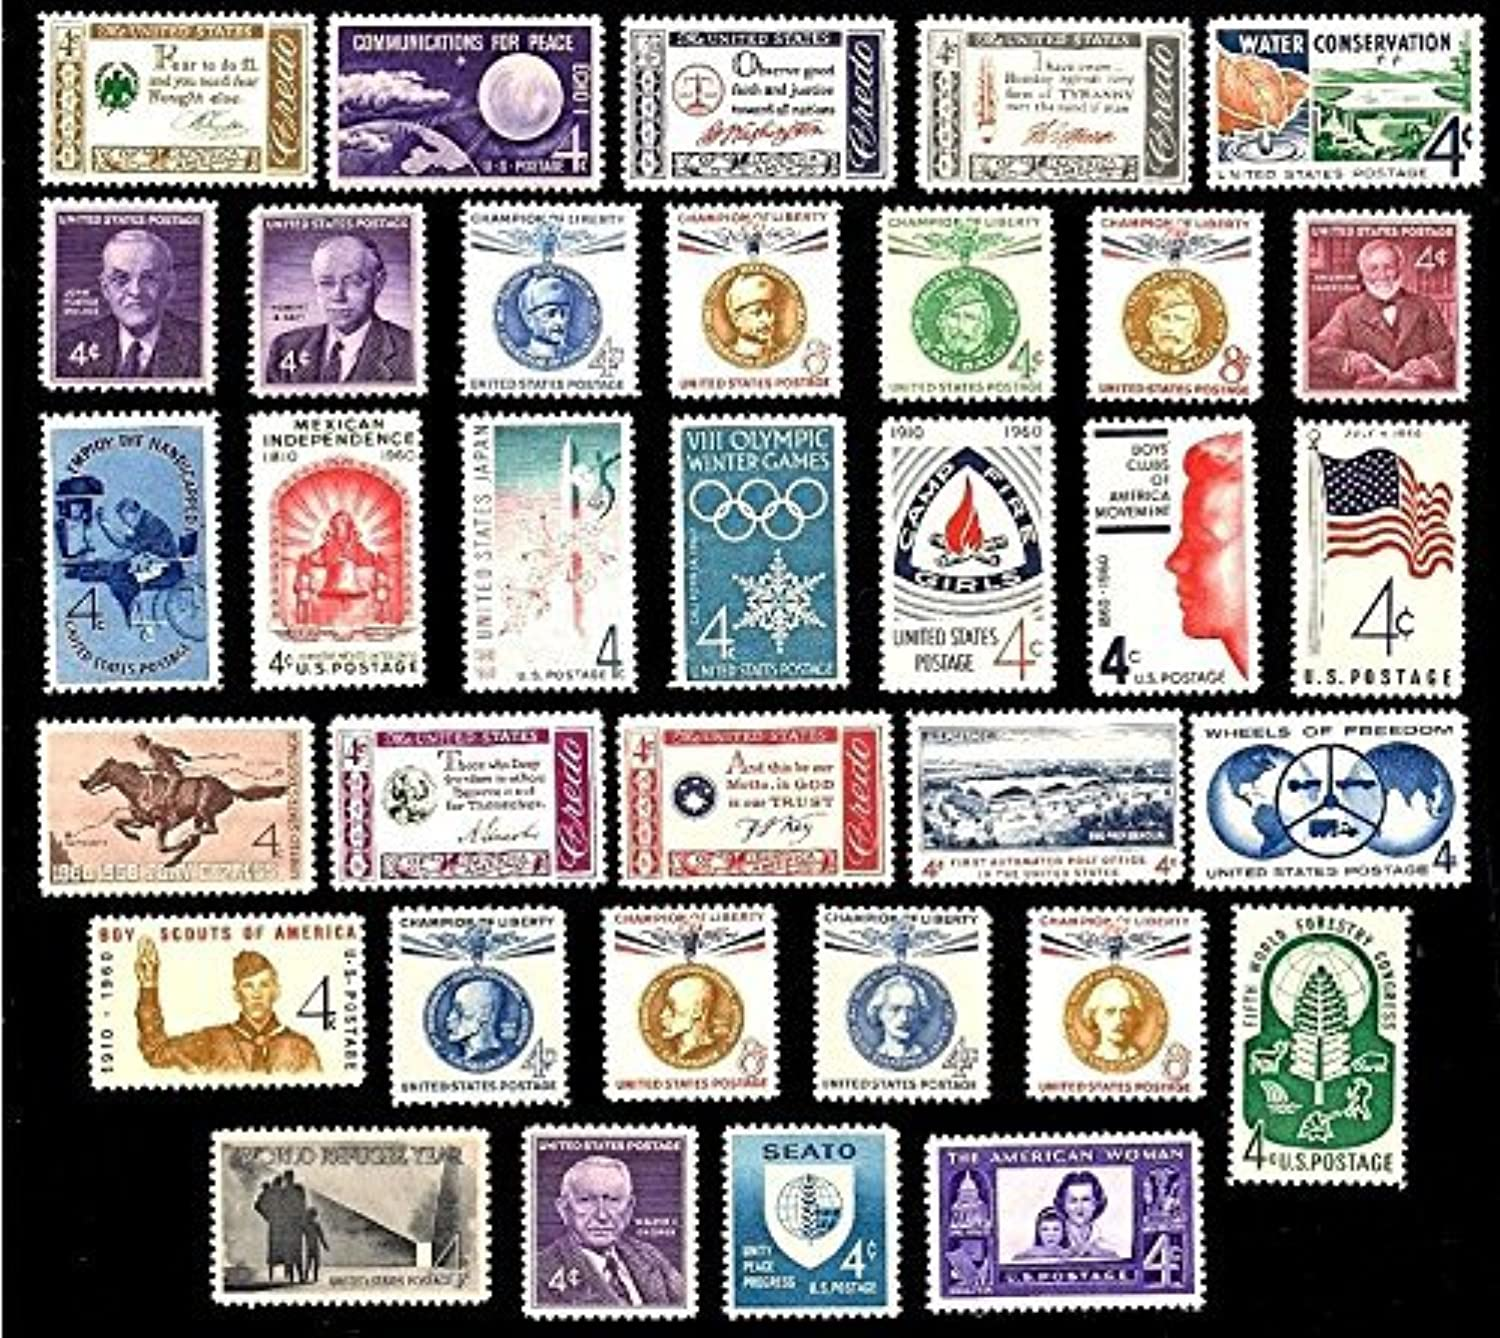 1960 Year Set of 34 Commemorative Stamps Mint NH Scott 1140-73 By USPS by USPS B01MQE163K   Shopping Online